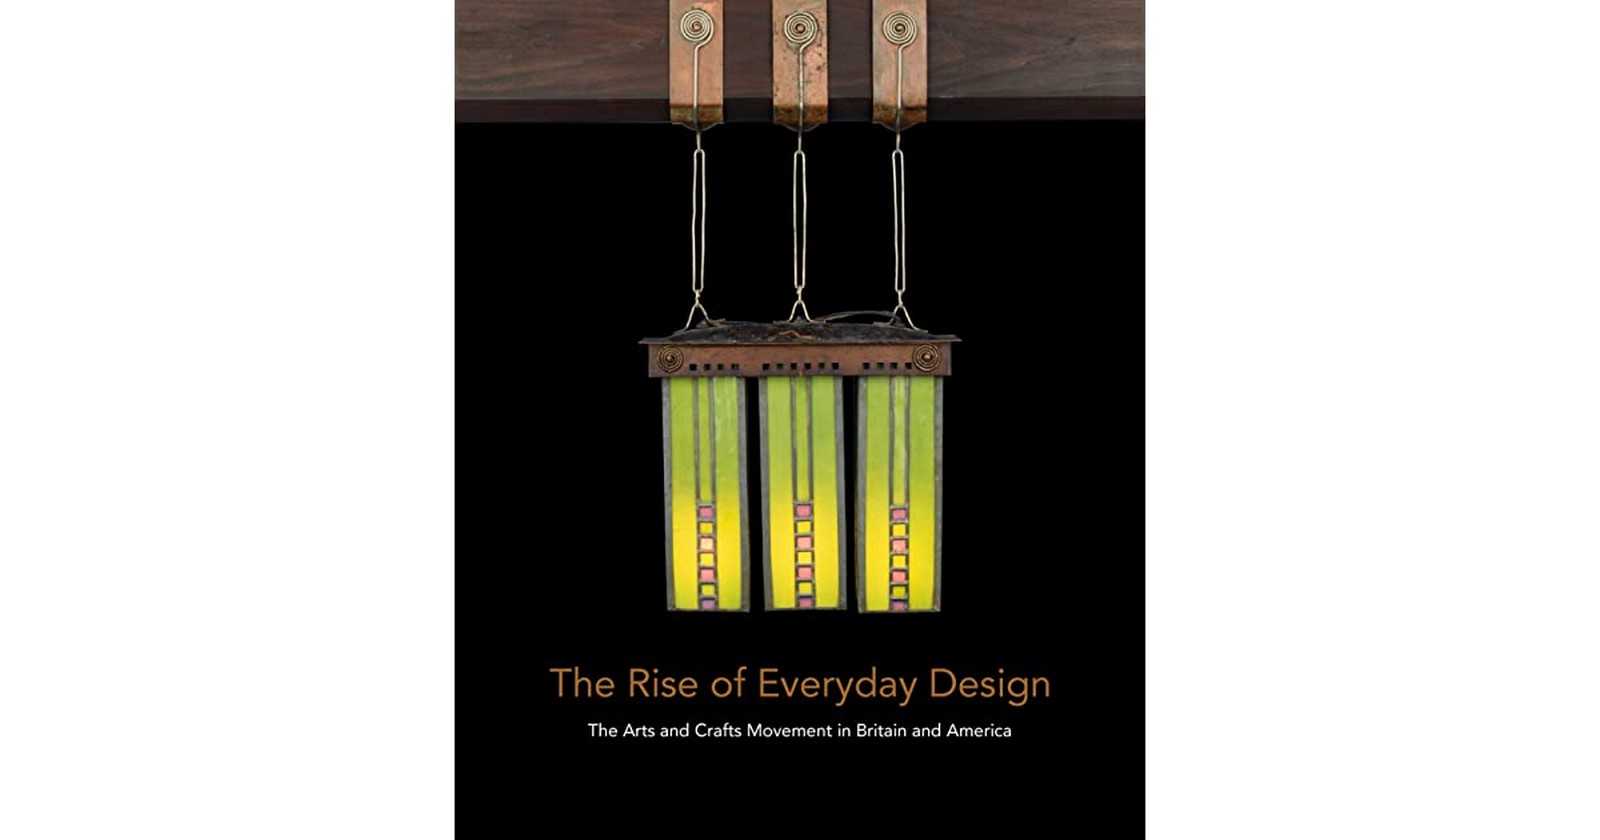 10 Books related to Furniture Design everyone should read Sheet7